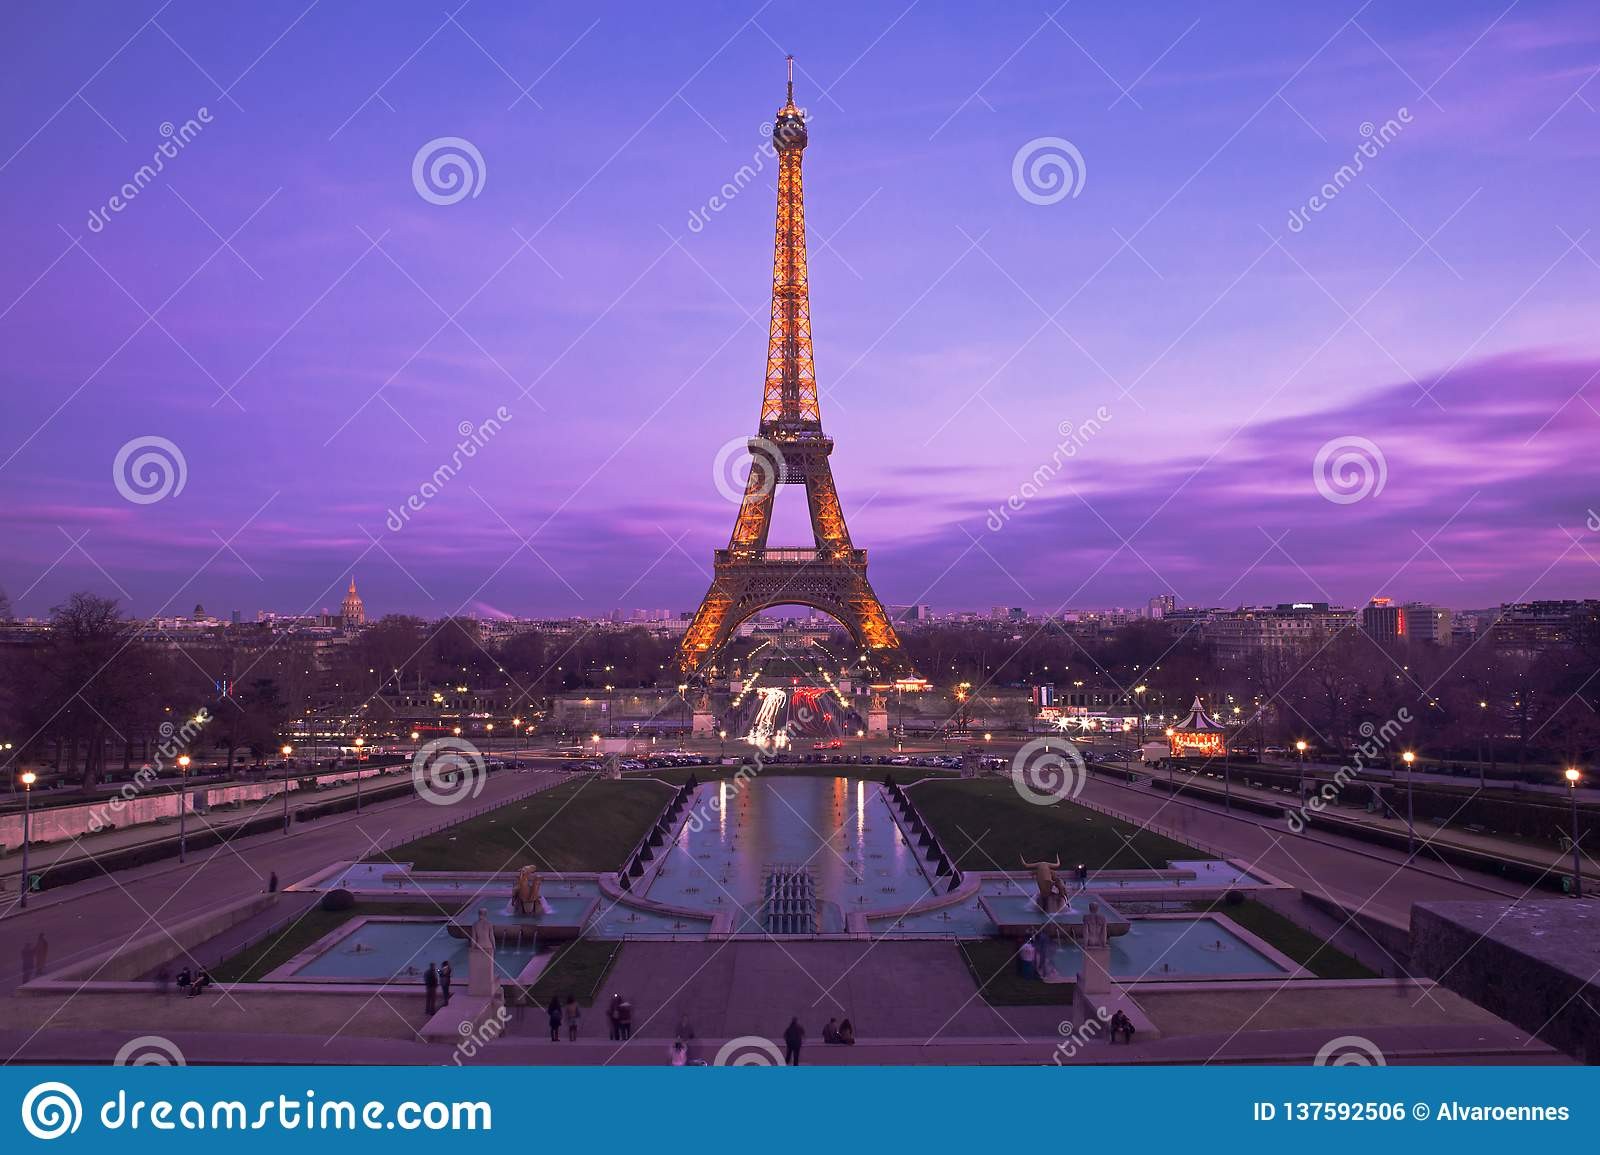 Eiffel Tower In A Purple Sunset Editorial Photo Image Of Architecture Tour 137592506